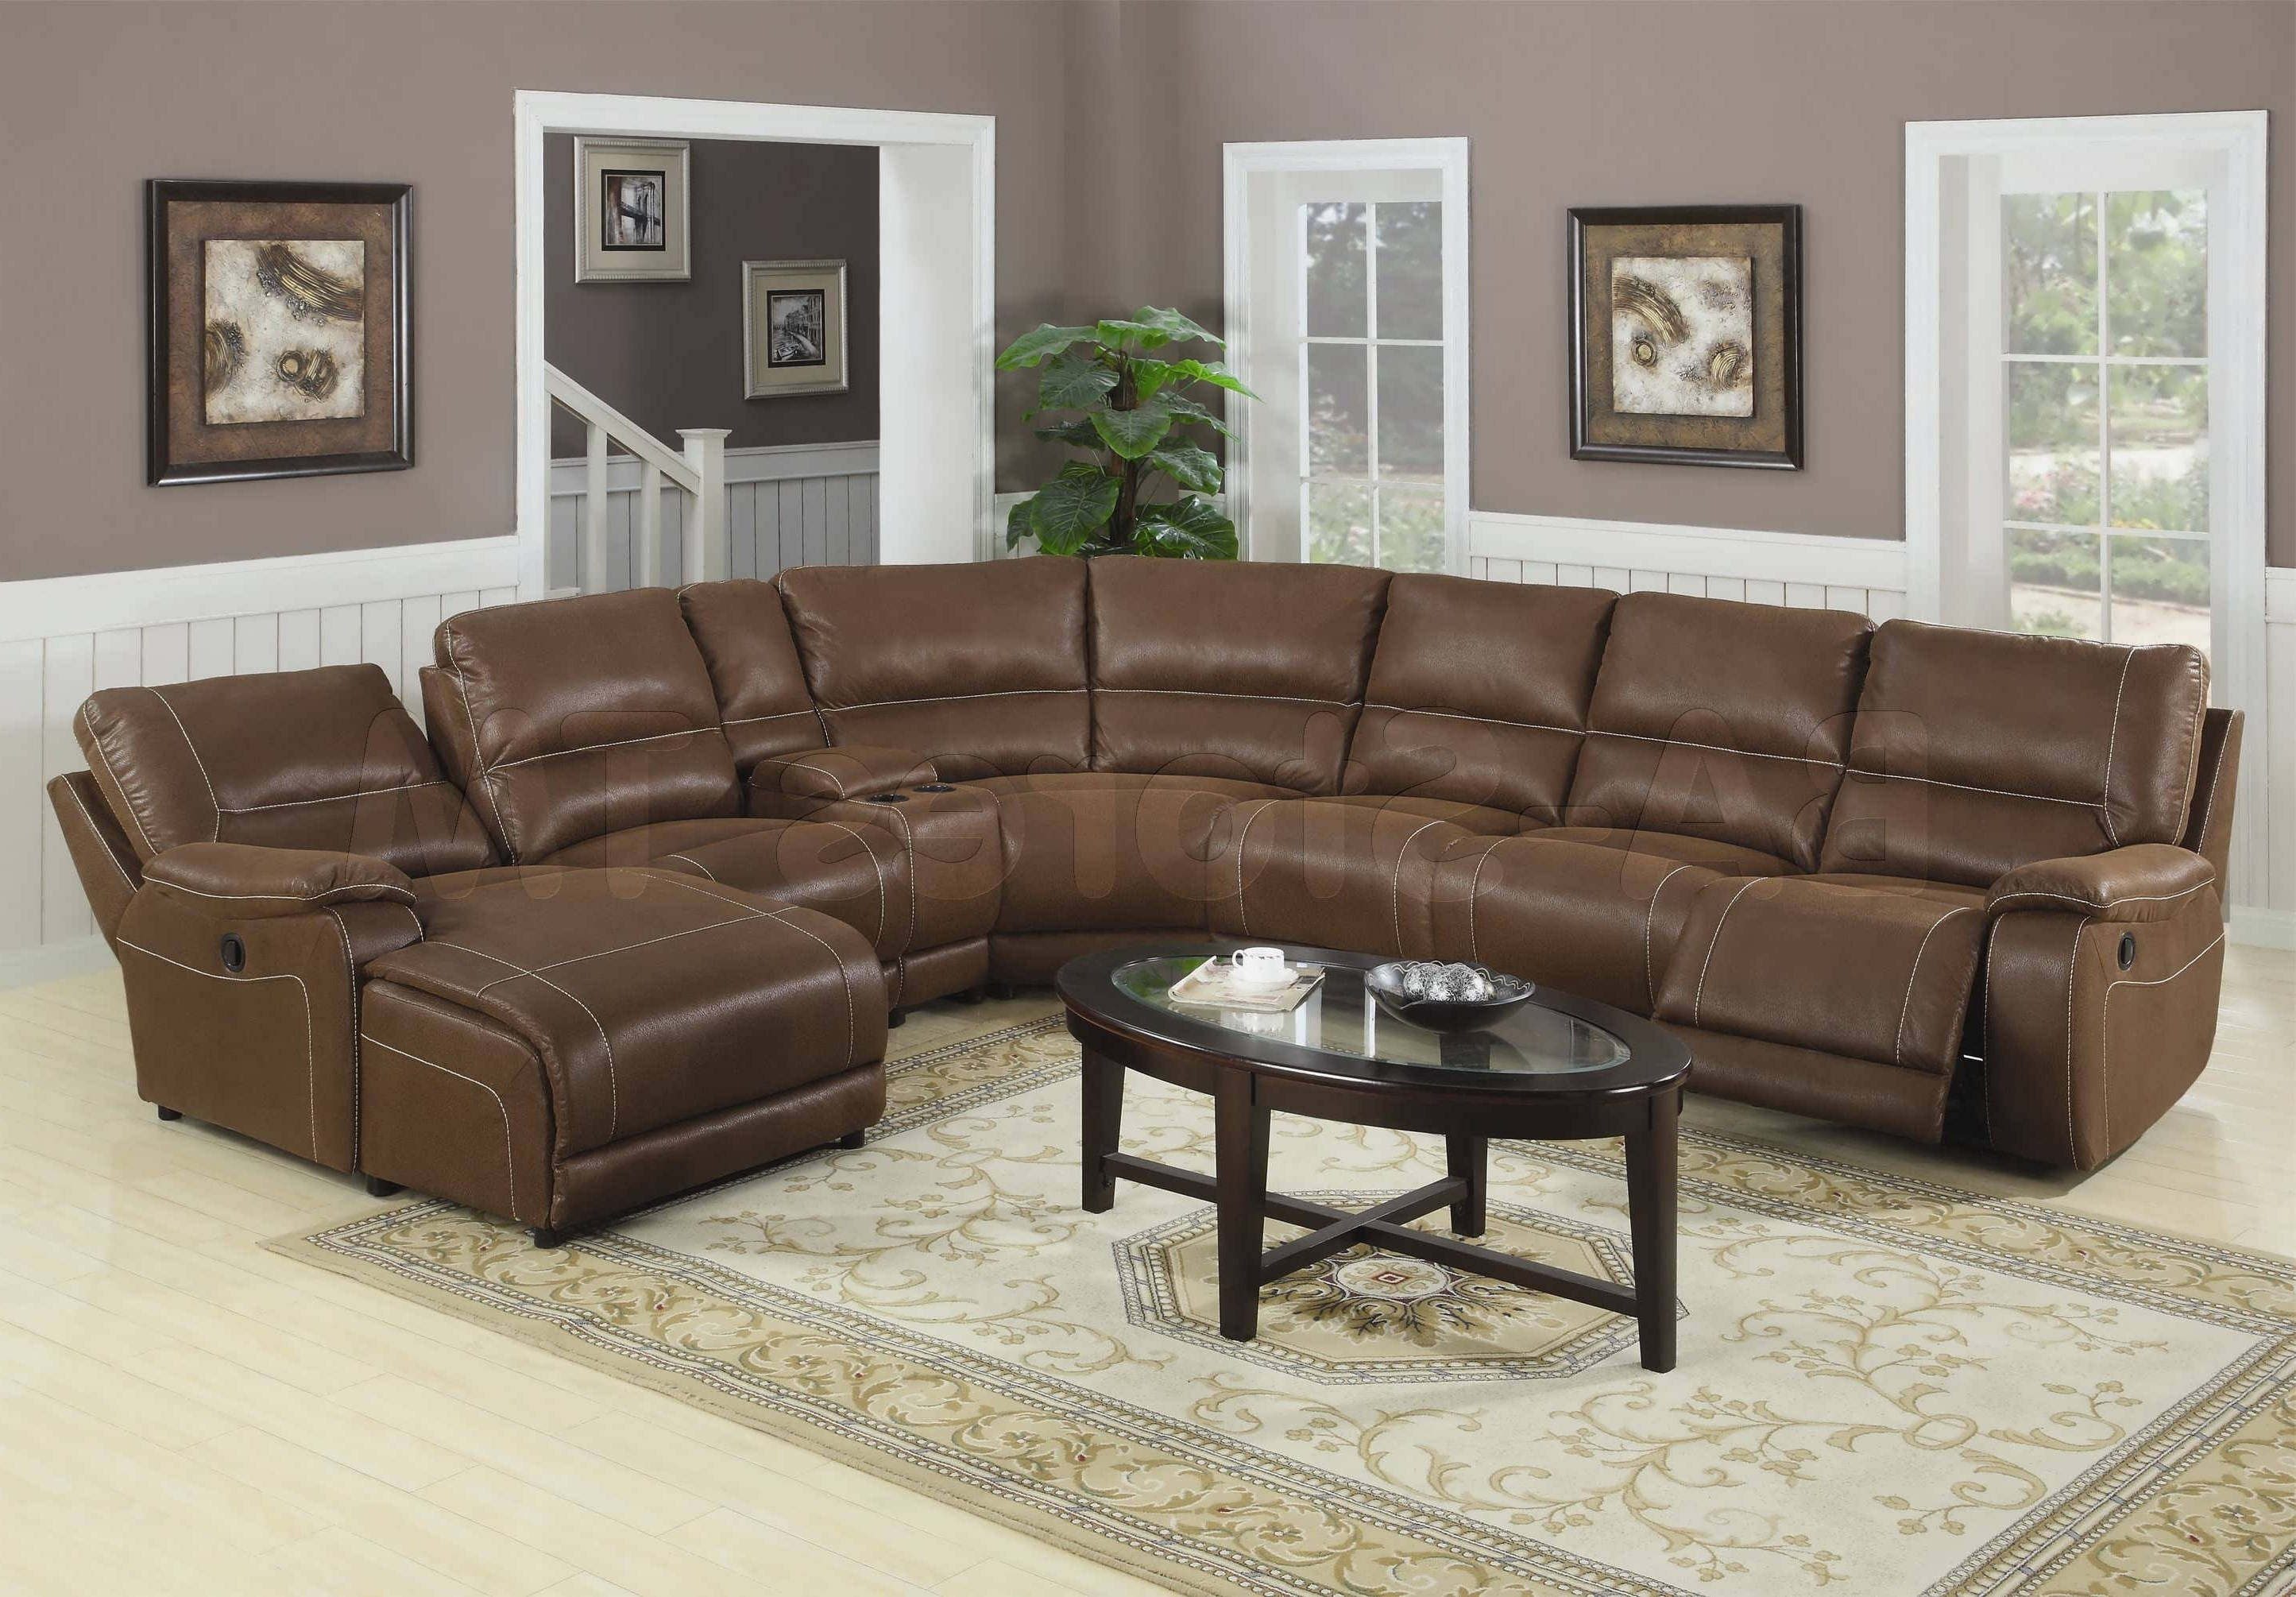 Trendy Sofa : Extra Large Sectional Sofas With Chaise Grey Sectional Inside Extra Large Sectional Sofas With Chaise (View 4 of 15)